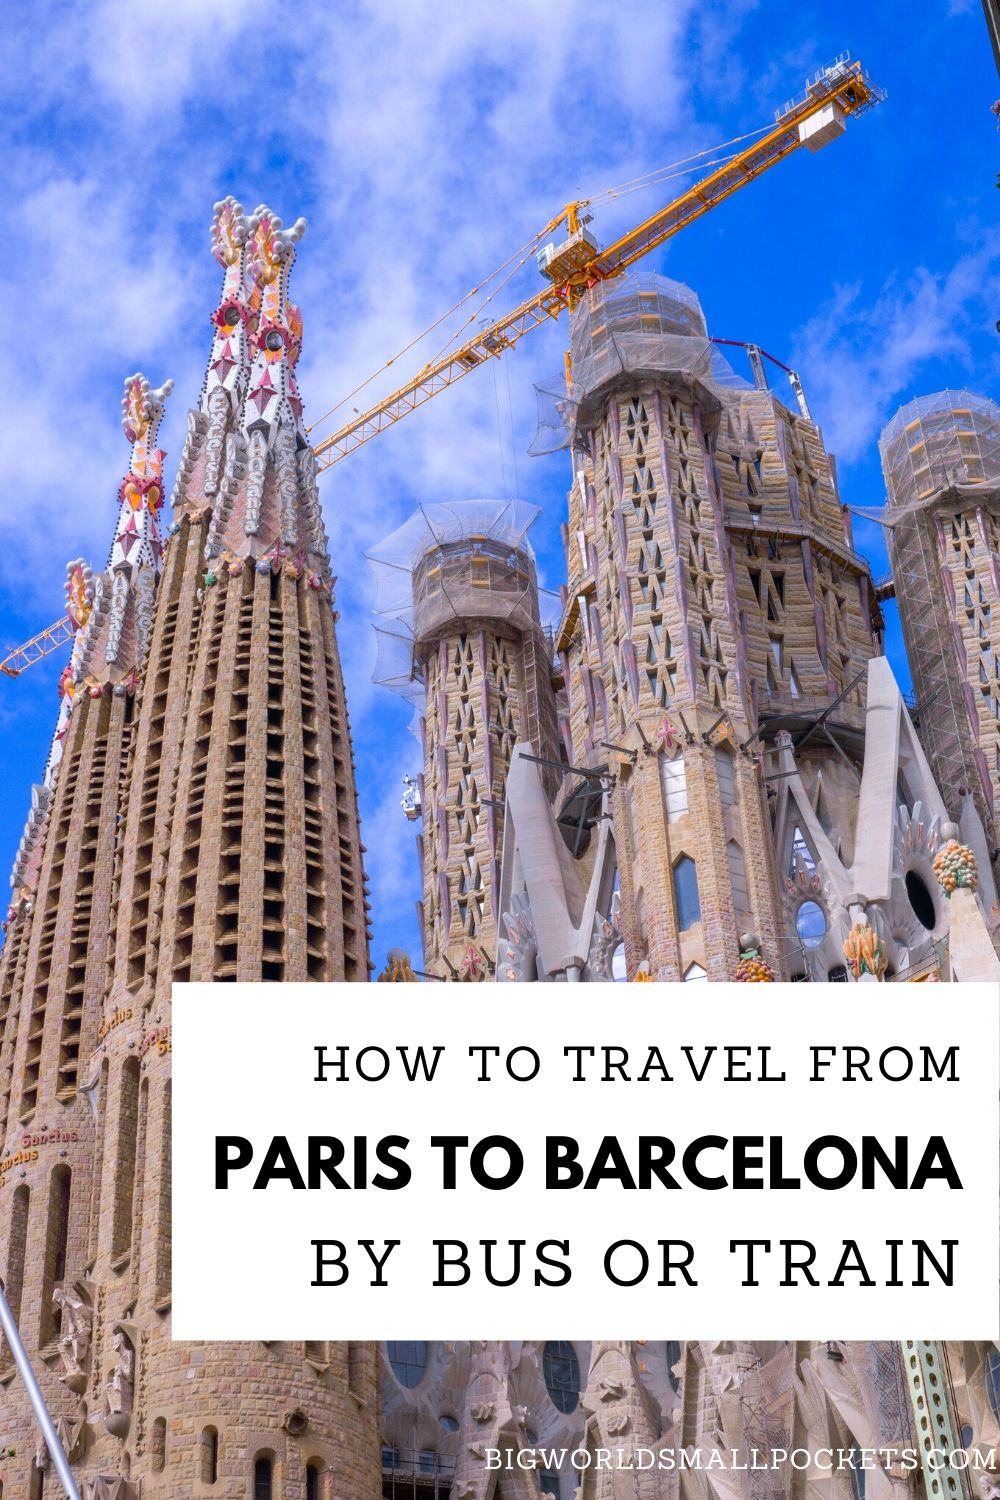 How to Travel from Paris to Barcelona